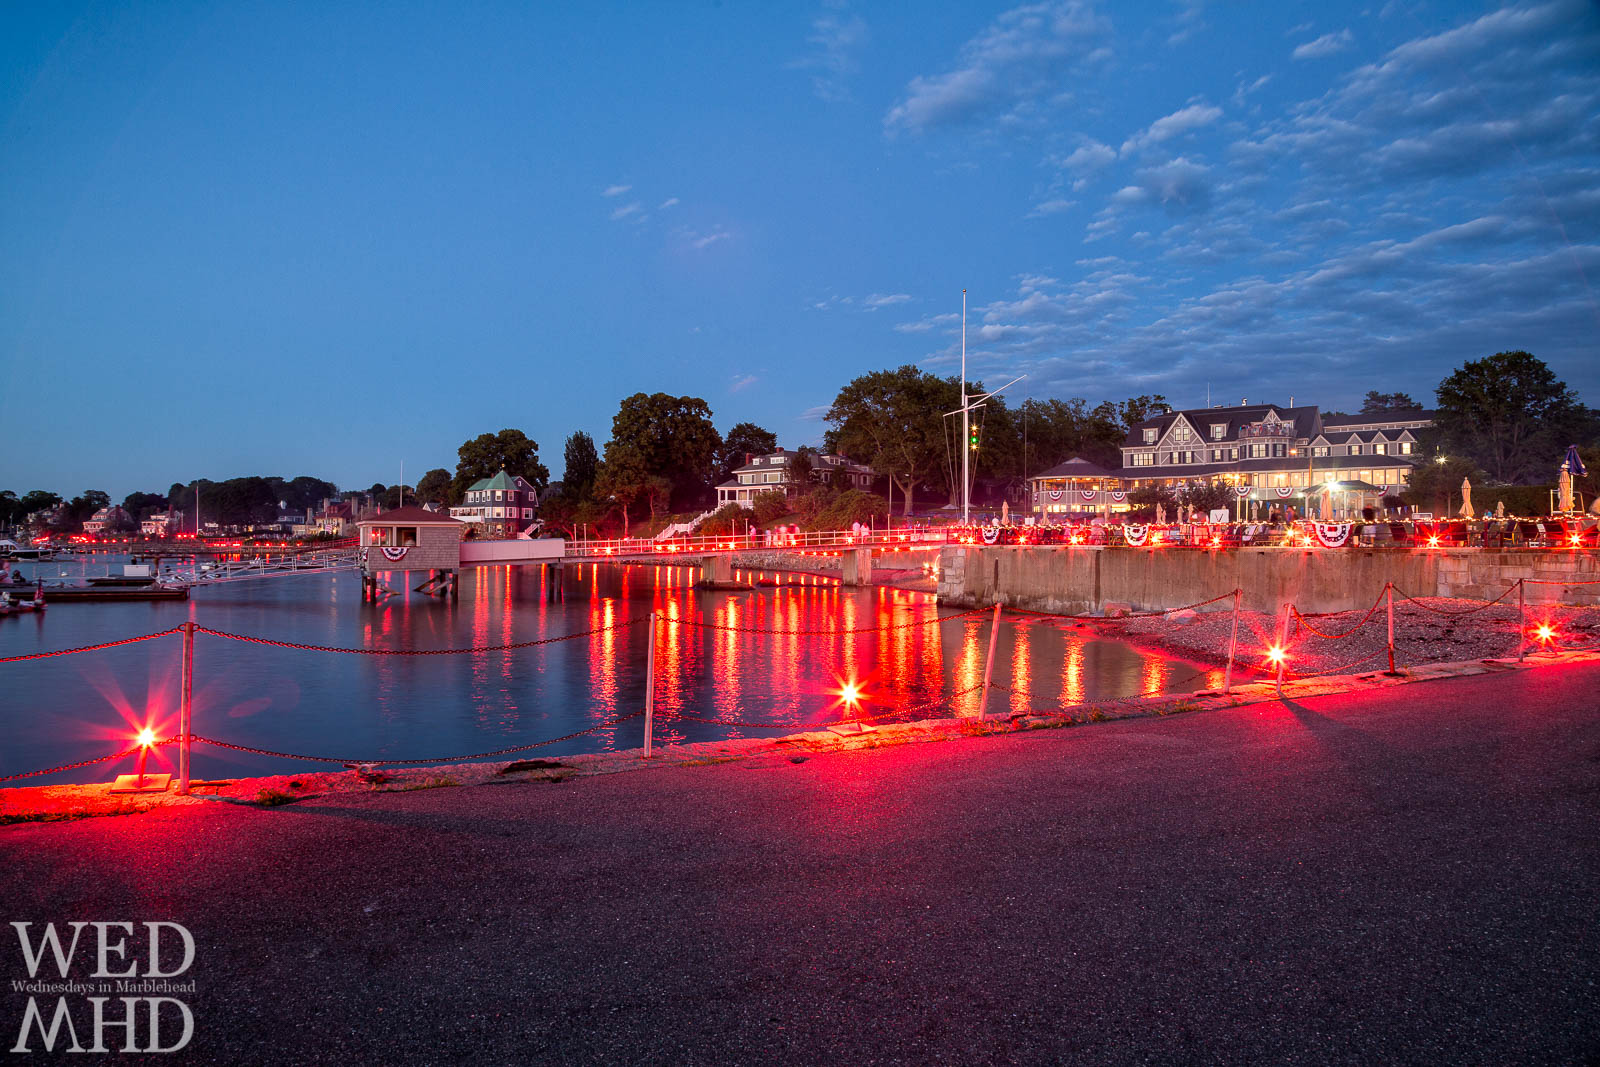 Lighting up the Eastern Yacht Club  with red flares during the annual Harbor illumination as part of the July 4th festivities in Marblehead